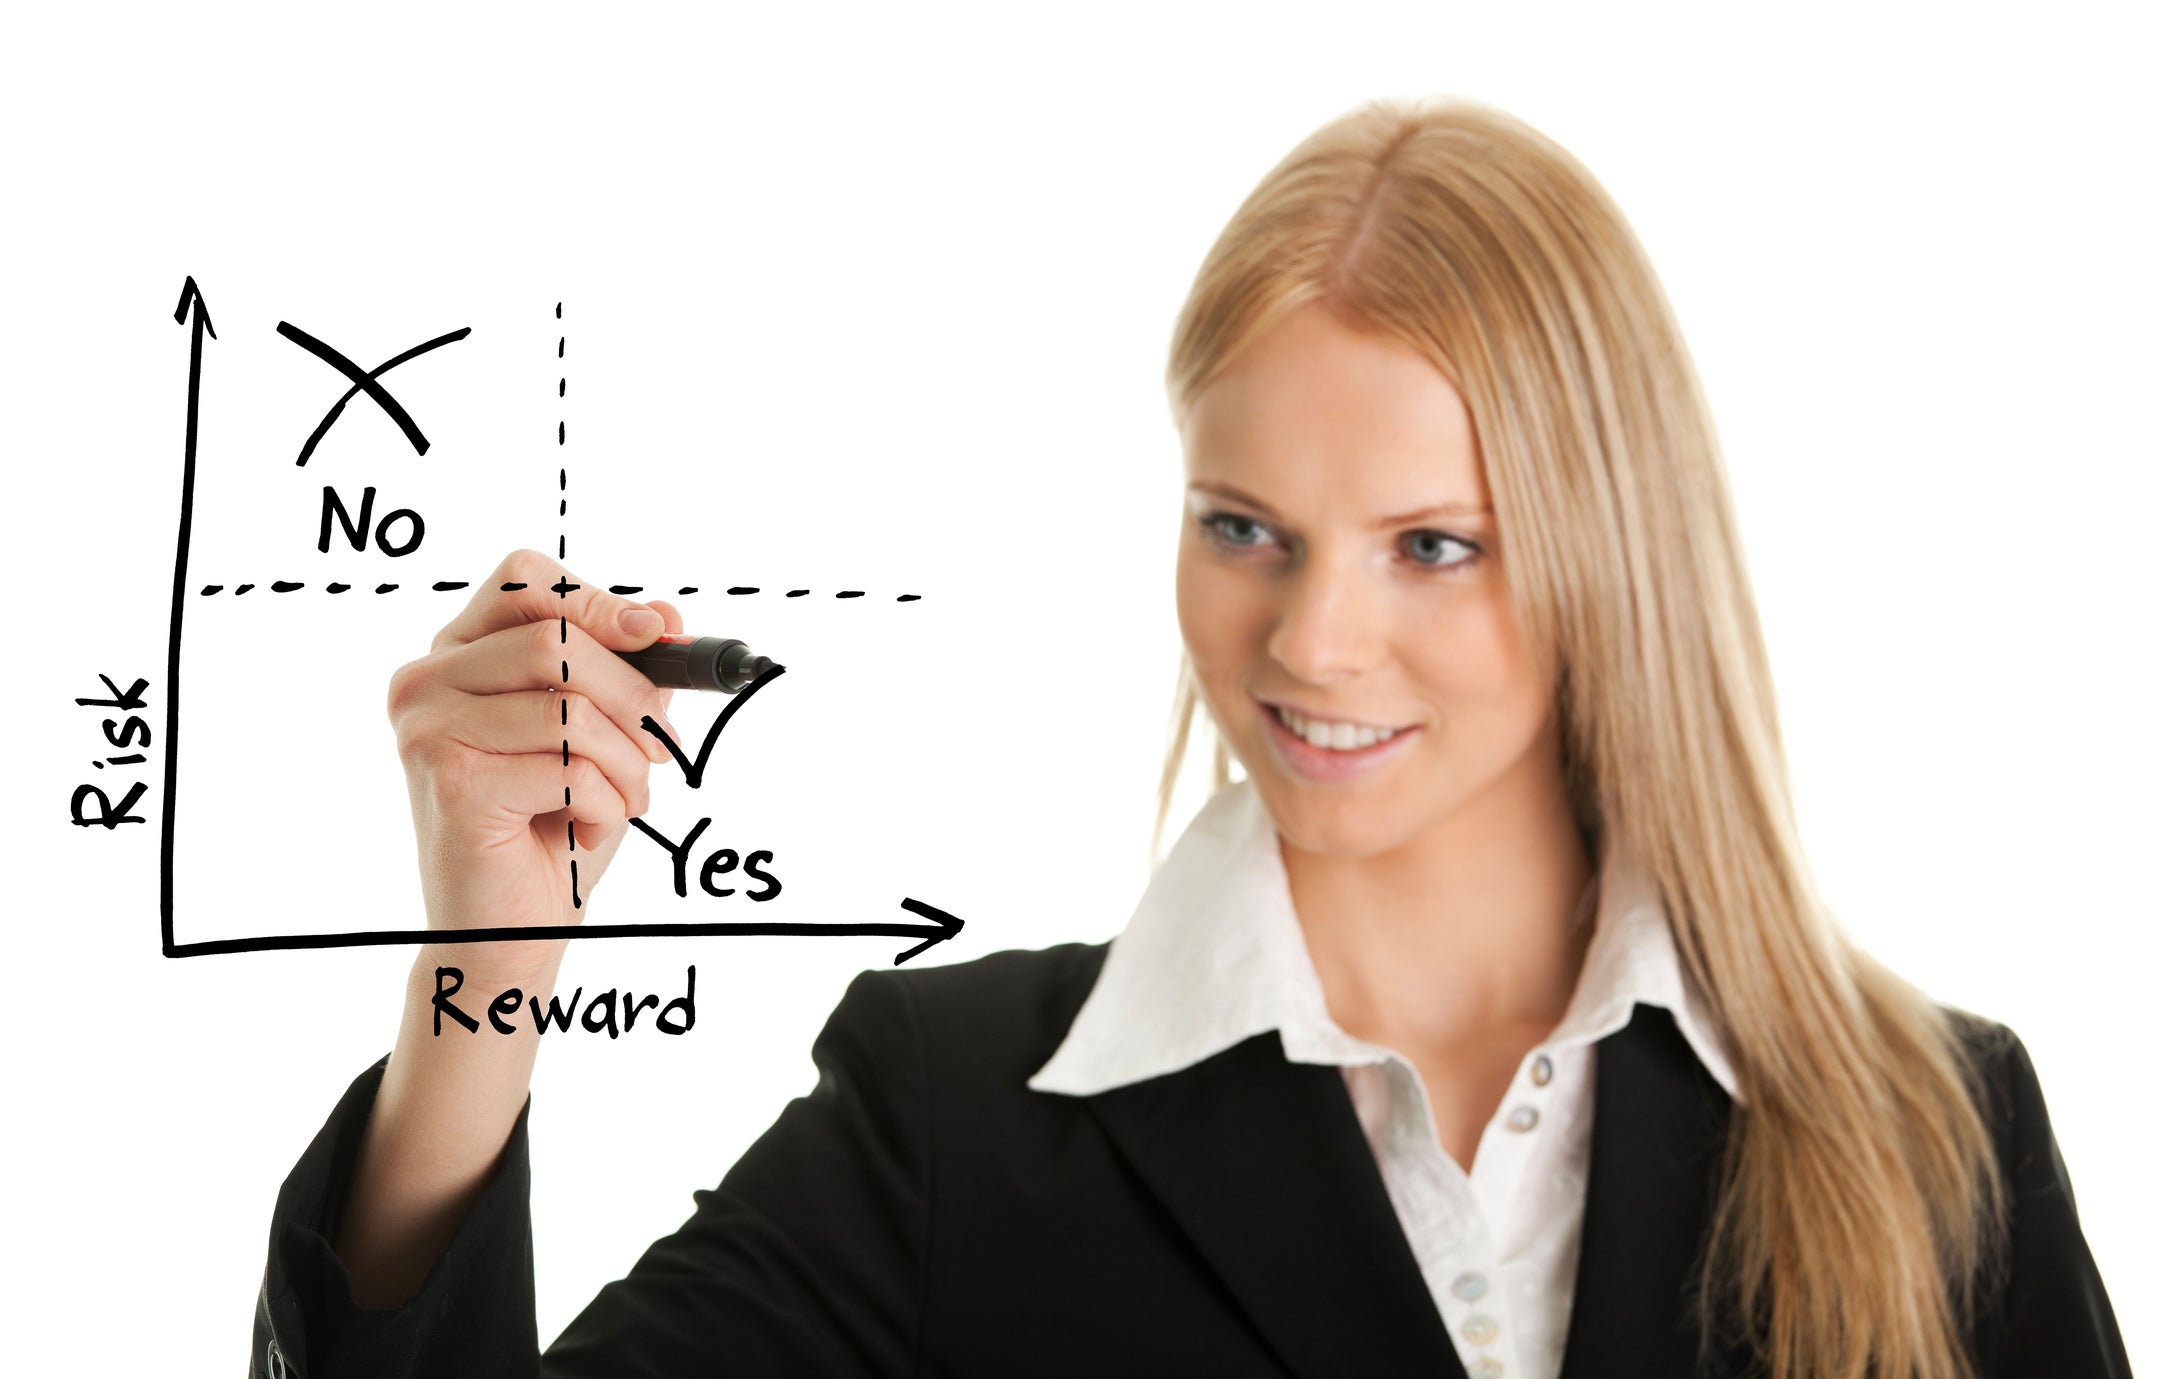 A woman drawing a risk versus reward graph.